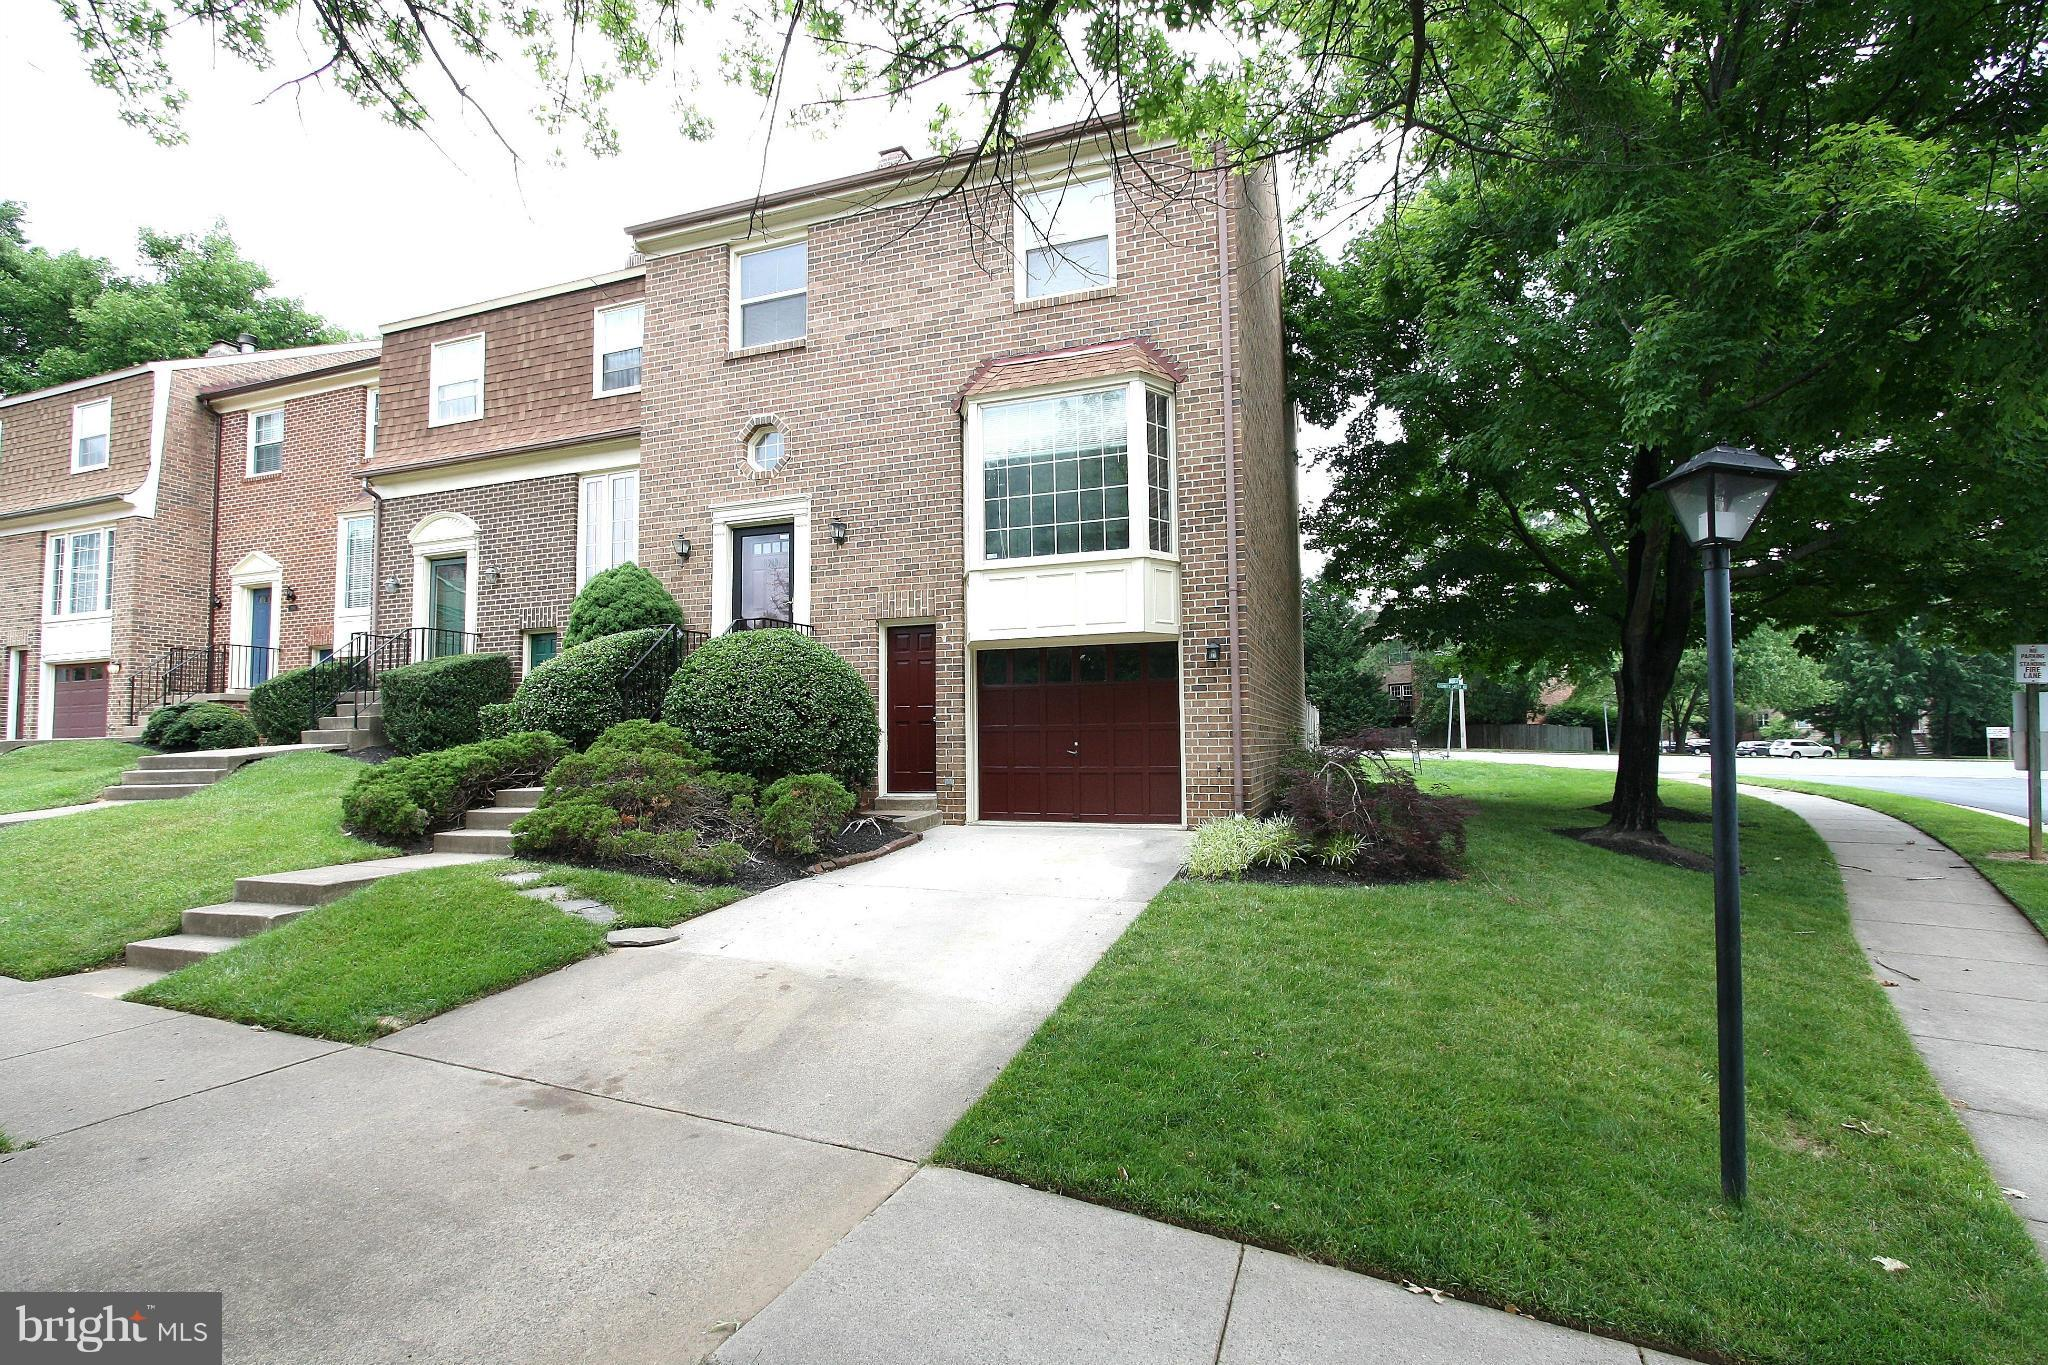 Large end unit townhouse w 3 bed, 3.5 baths, located in well-maintained neighborhood. This 2400 sq ft home has 3 levels, garage, driveway, and sep walkout on bsmt level. Private, shaded patio, fenced in yard, perfect for entertaining. Den w wet bar. Lots of storage, walk-in closets. 2 blocks to Vienna Metro, 1 block to Oakton High School.